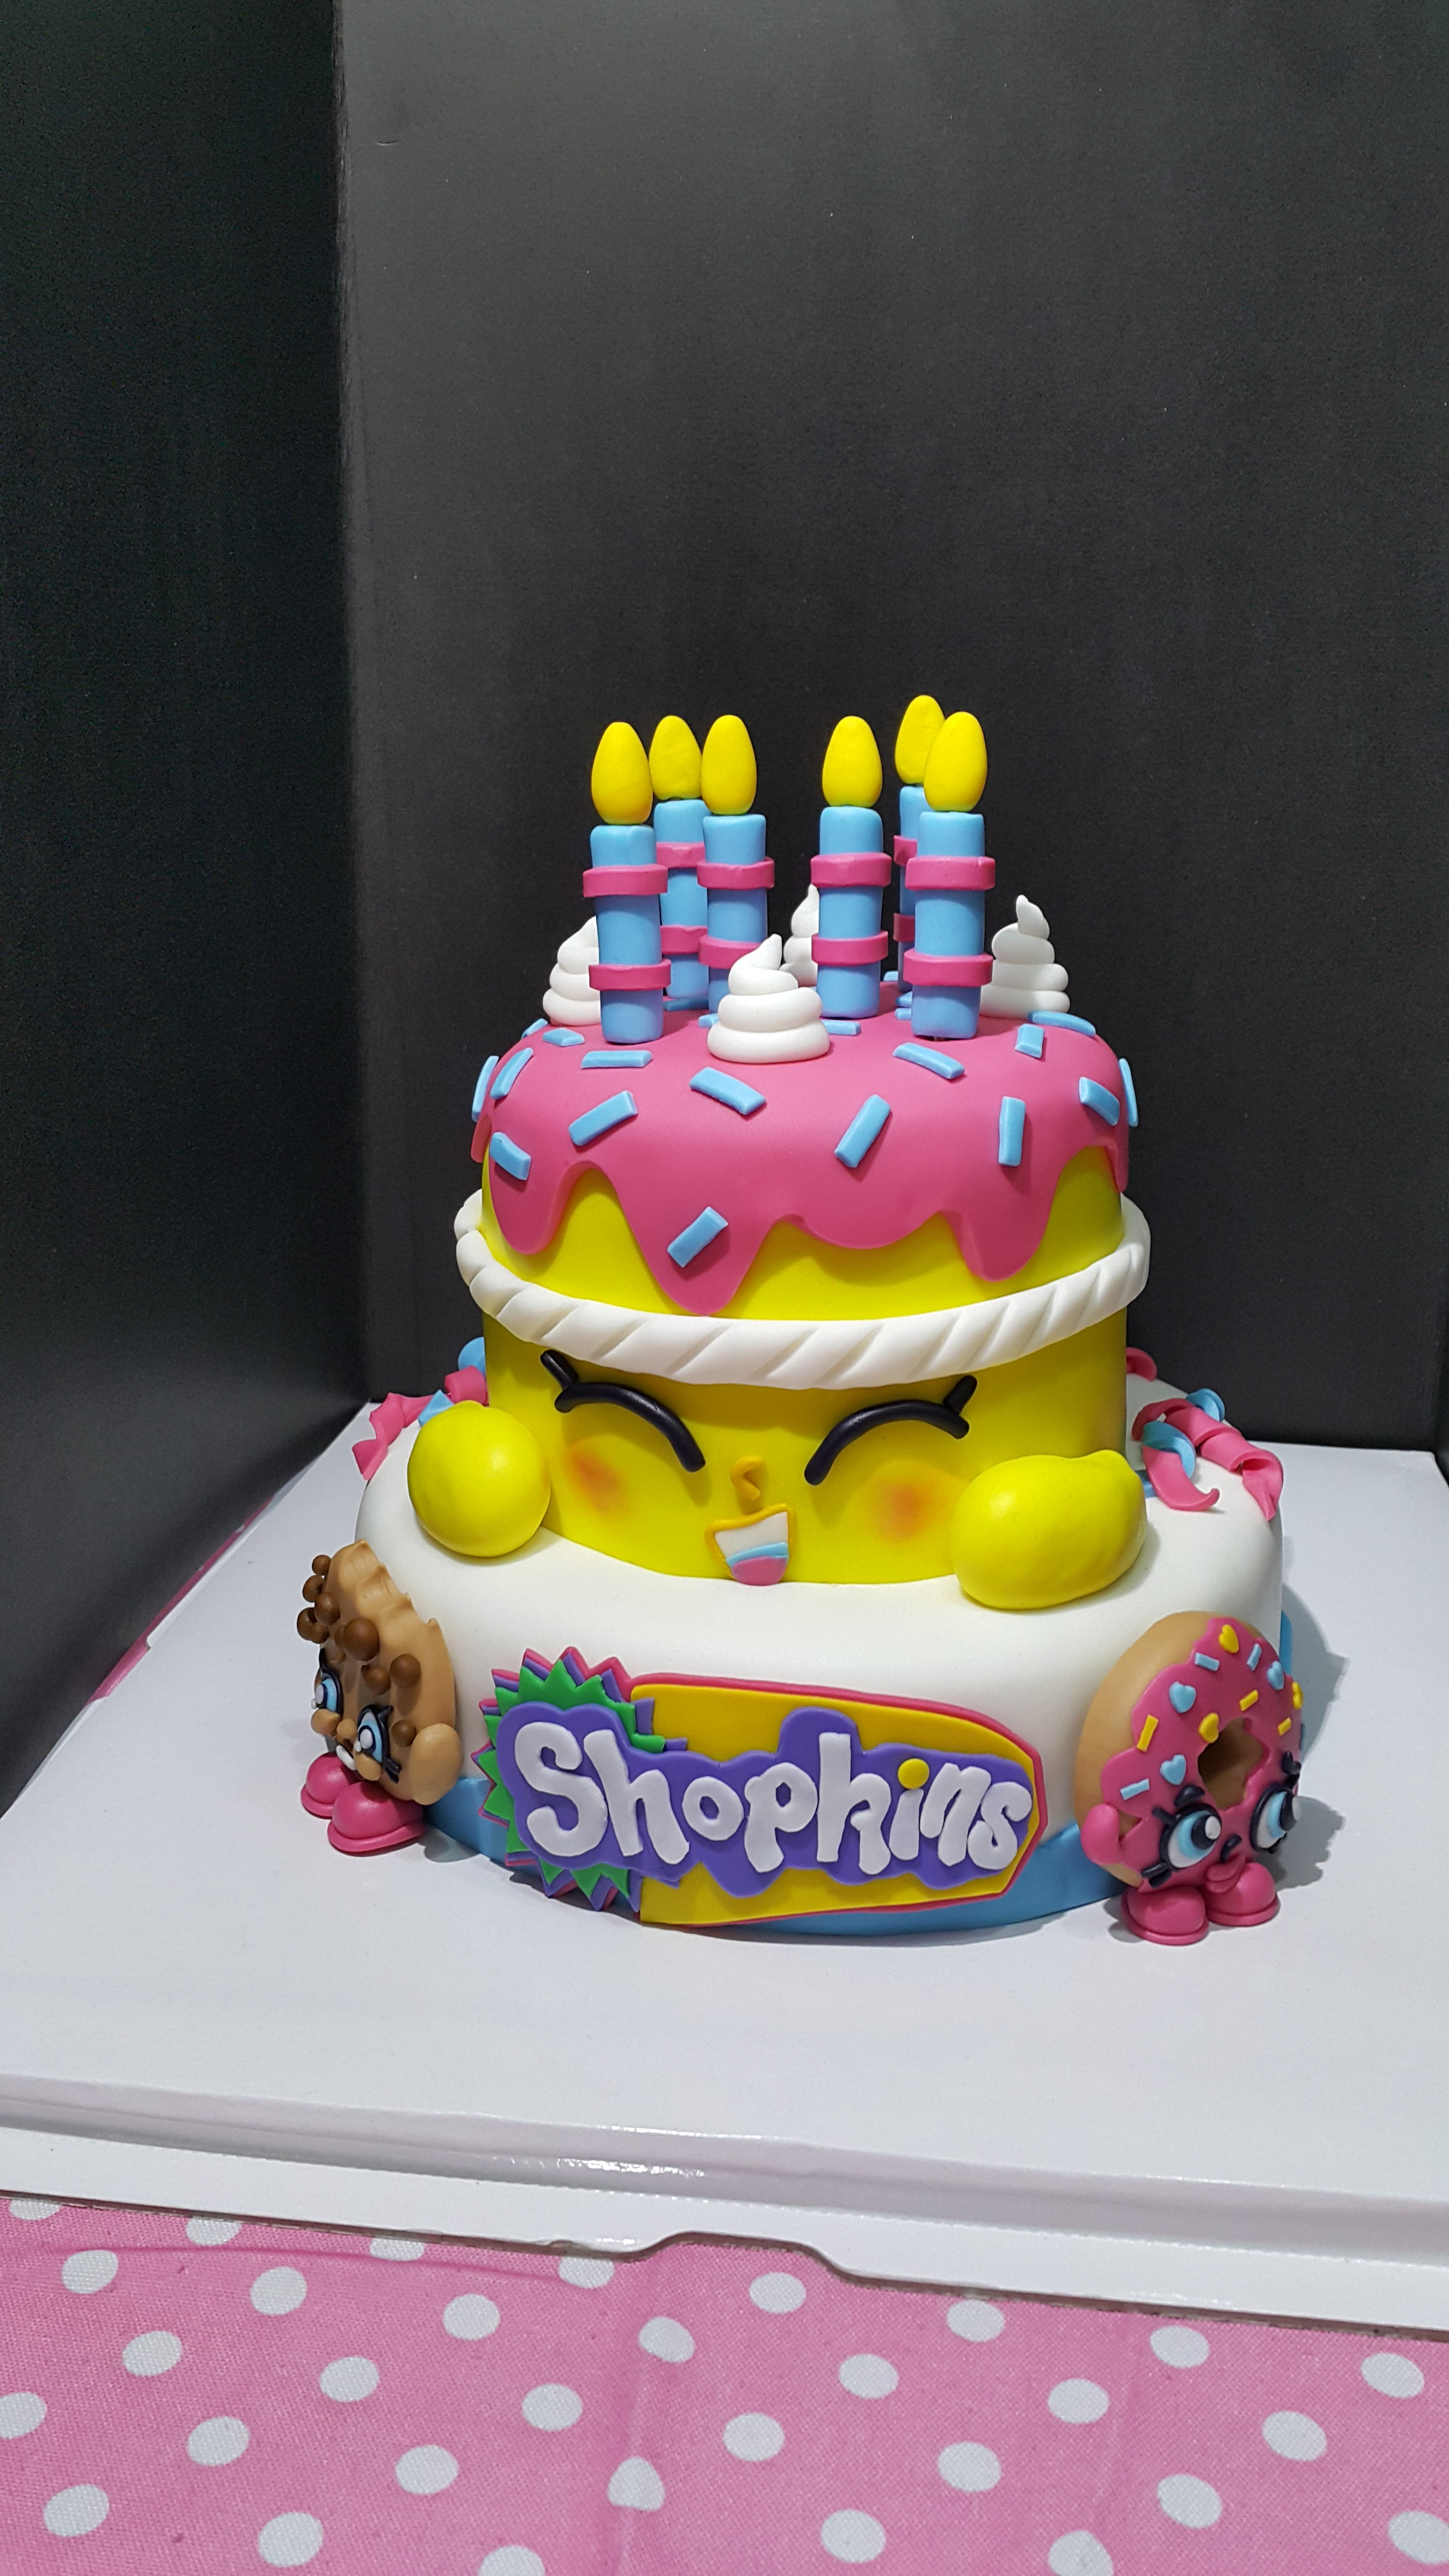 Strawberry Shopkins Cake